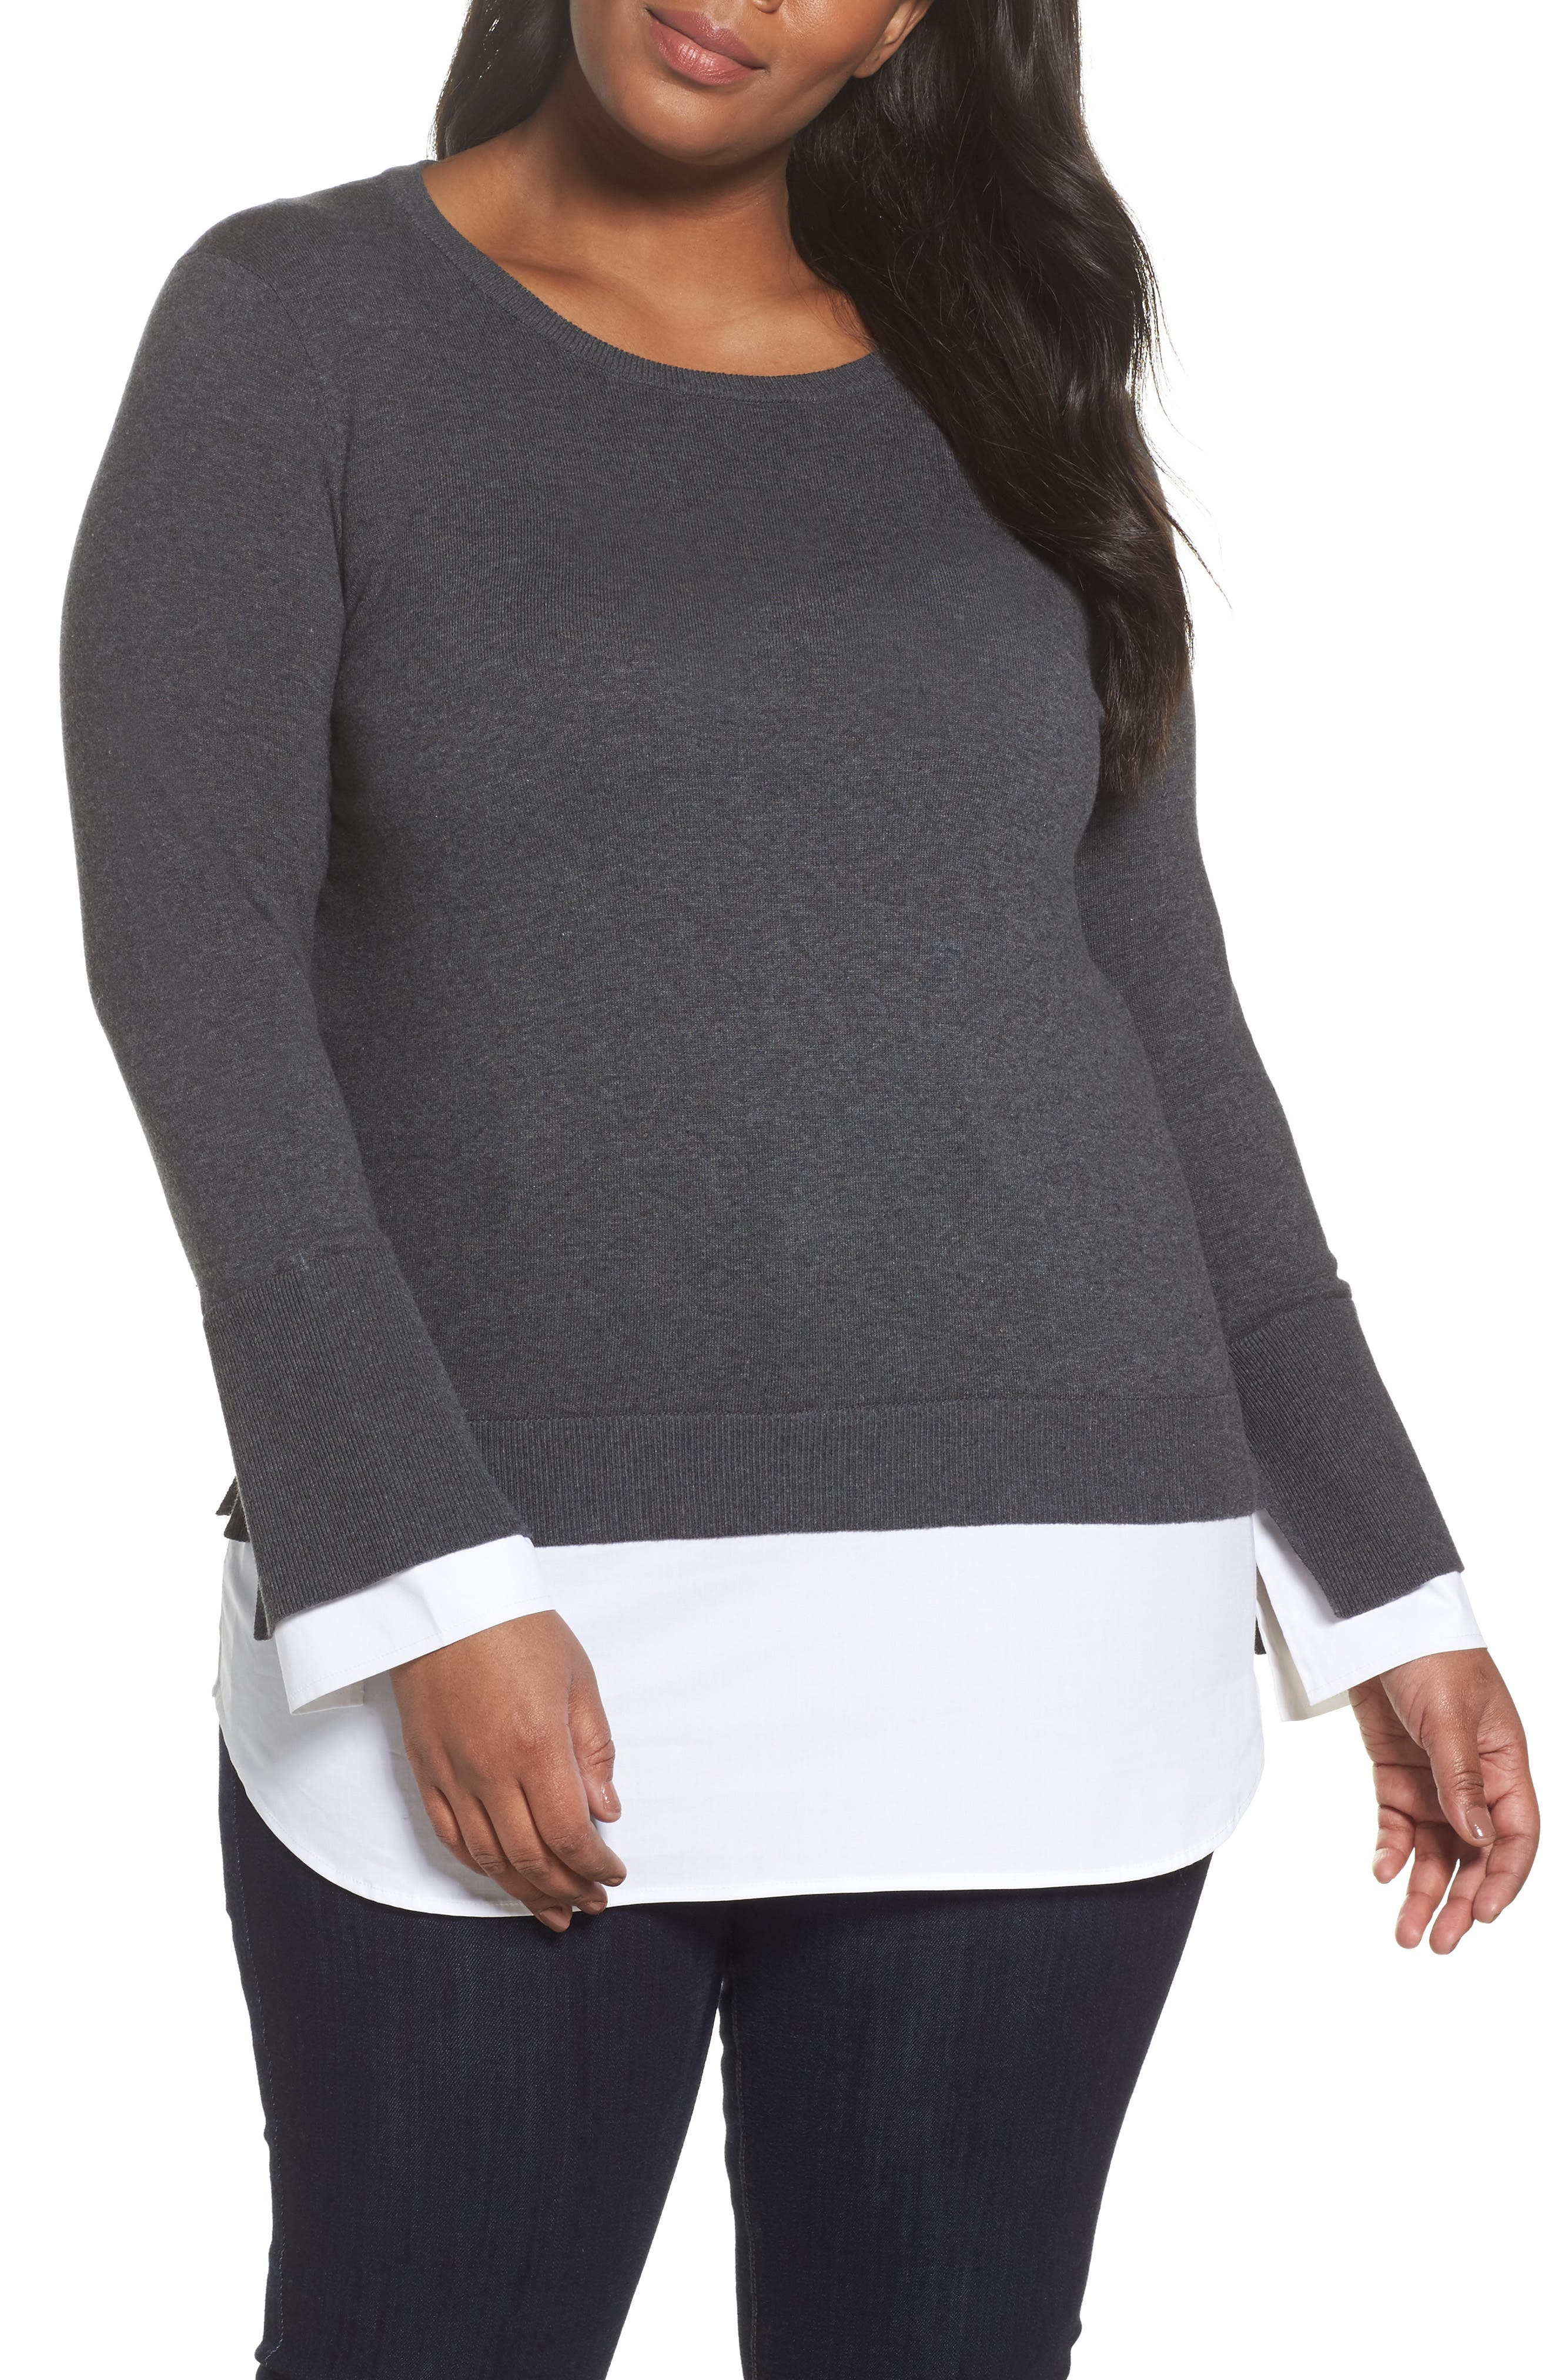 Alternate Image 1 Selected - Vince Camuto Layered Look Sweater (Plus Size)